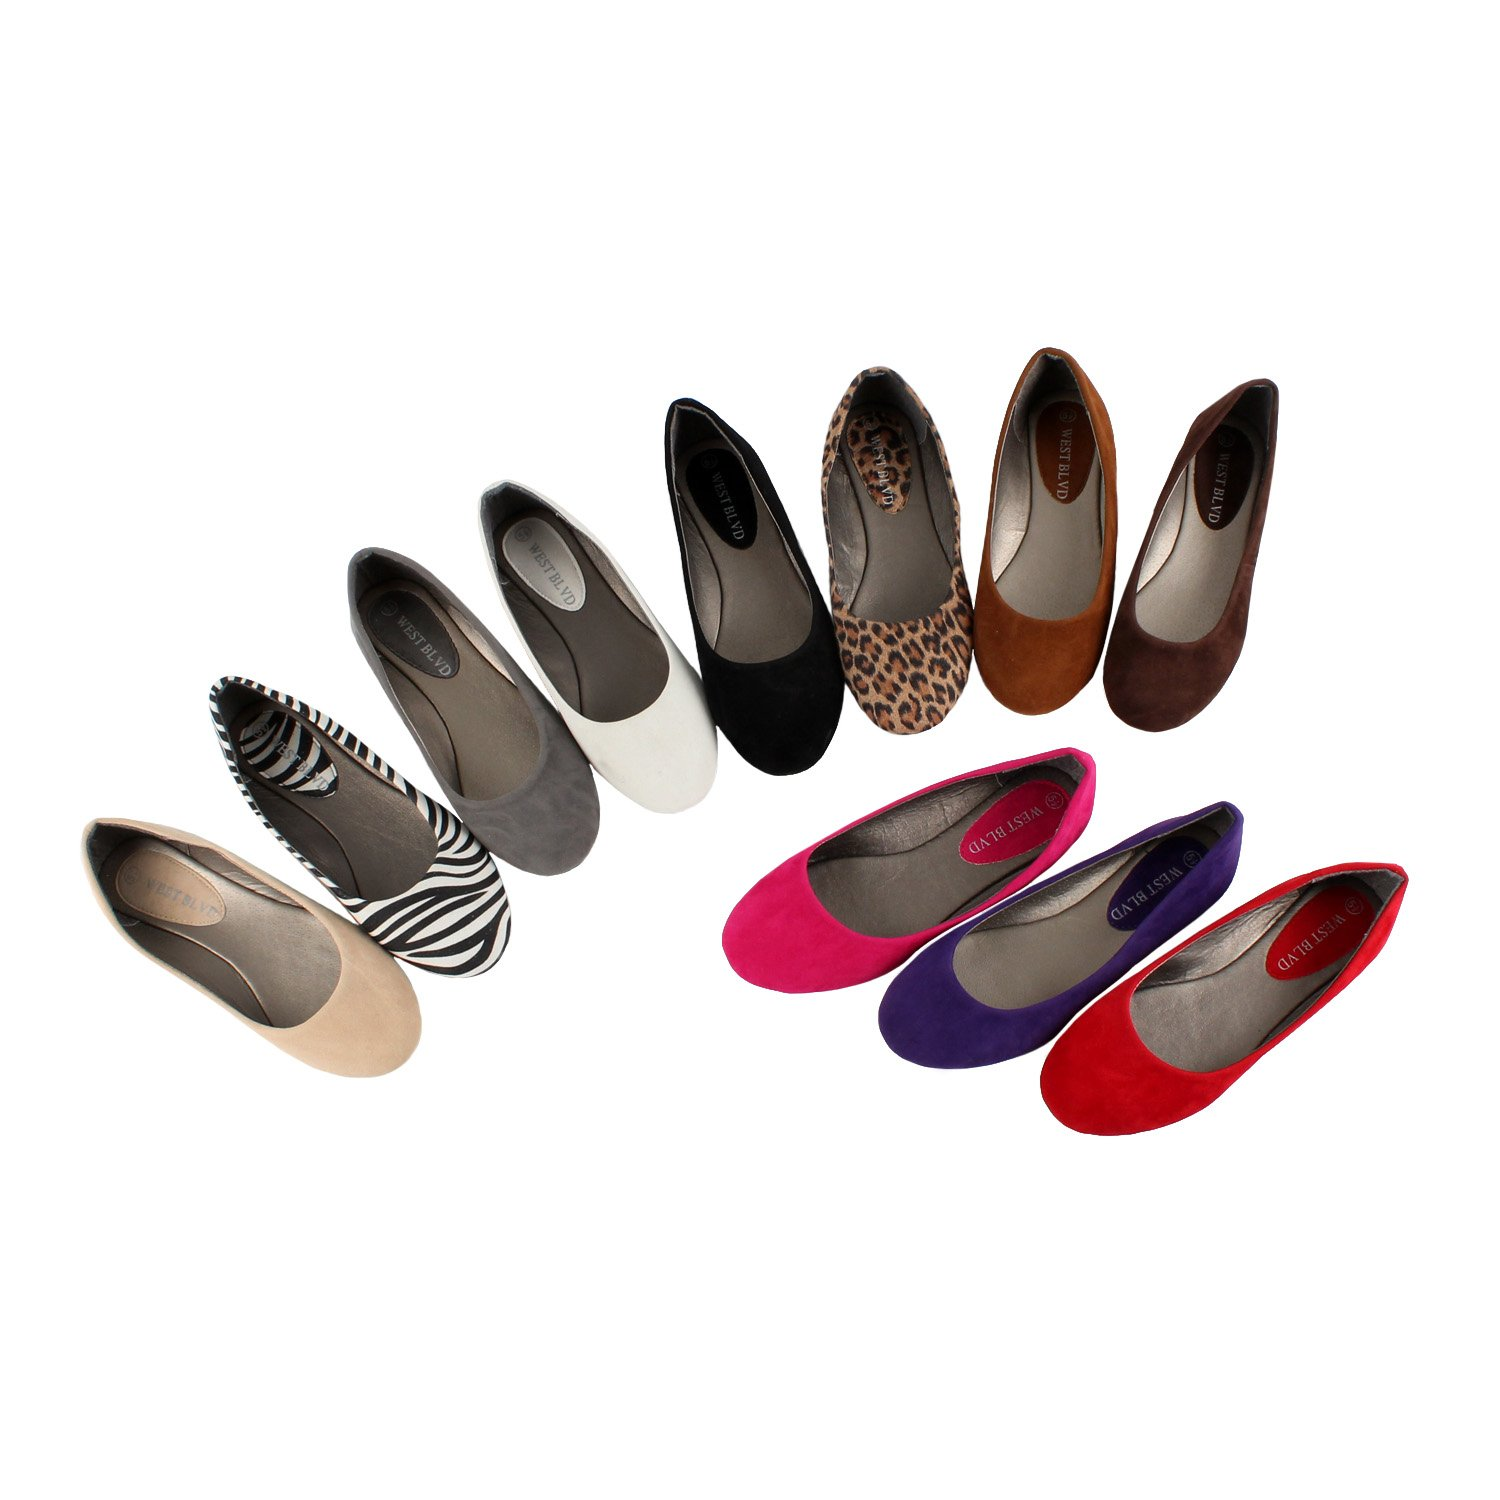 West Blvd Women's Ballet Flats...